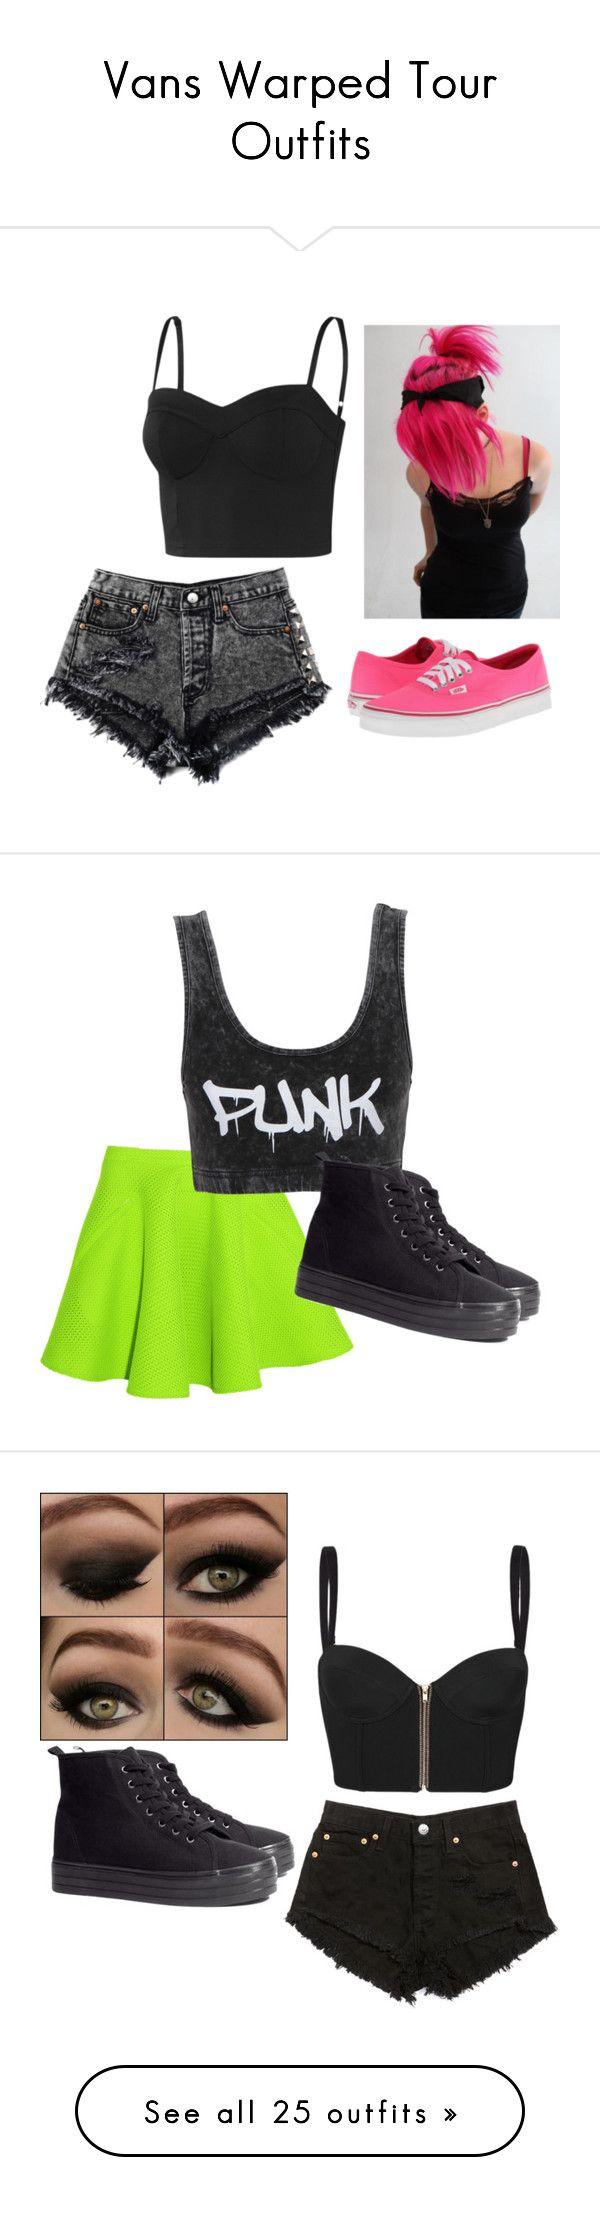 """Vans Warped Tour Outfits"" by mjvm on Polyvore featuring Vans, adidas, Chalayan, Neon Hart, H&M, sass & bide, Converse, American Apparel, Ray-Ban and BBon-J"